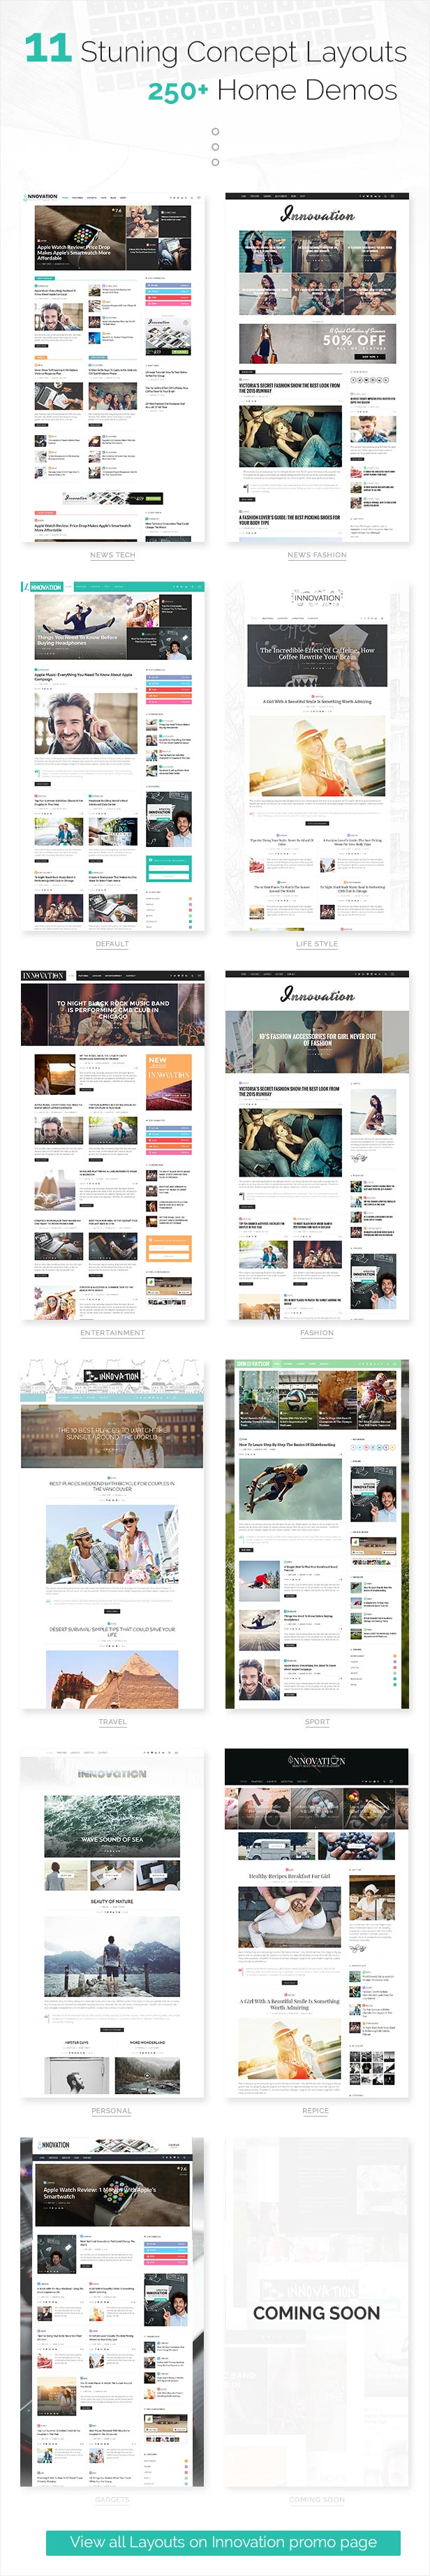 INNOVATION: Multi-Concept News, Magazine & Blog Theme - 4